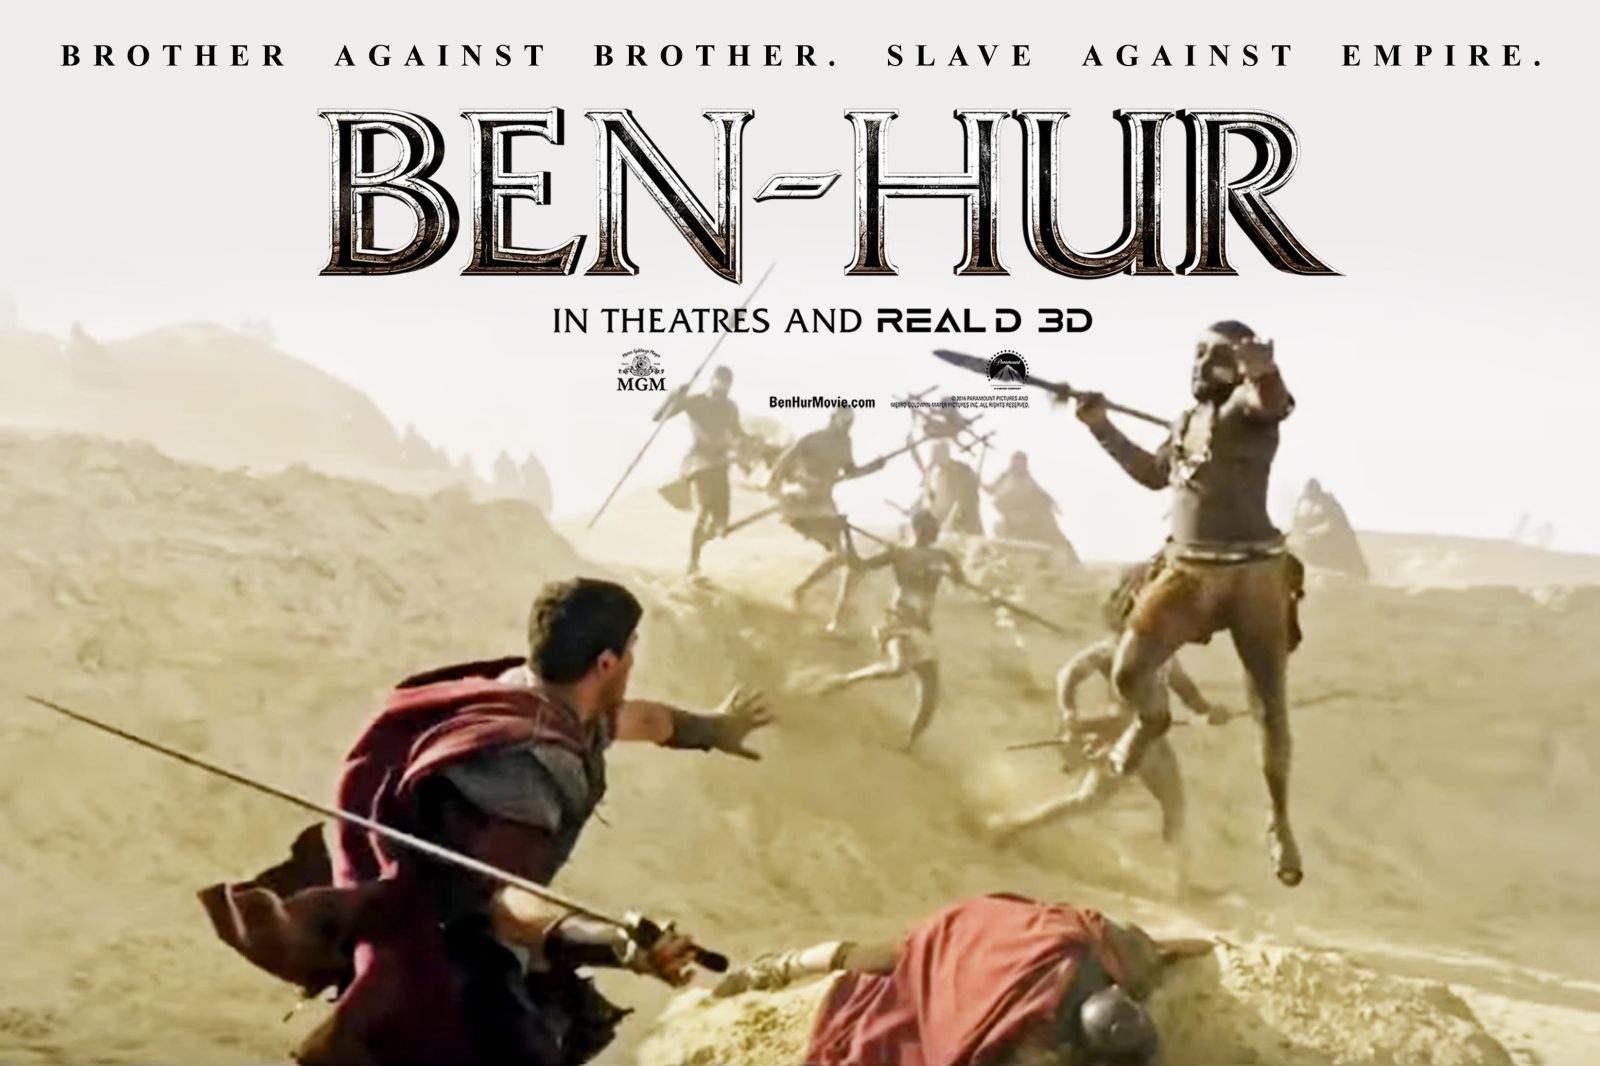 Movies 2016 Posters: Ben Hur 2016 Movie Posters